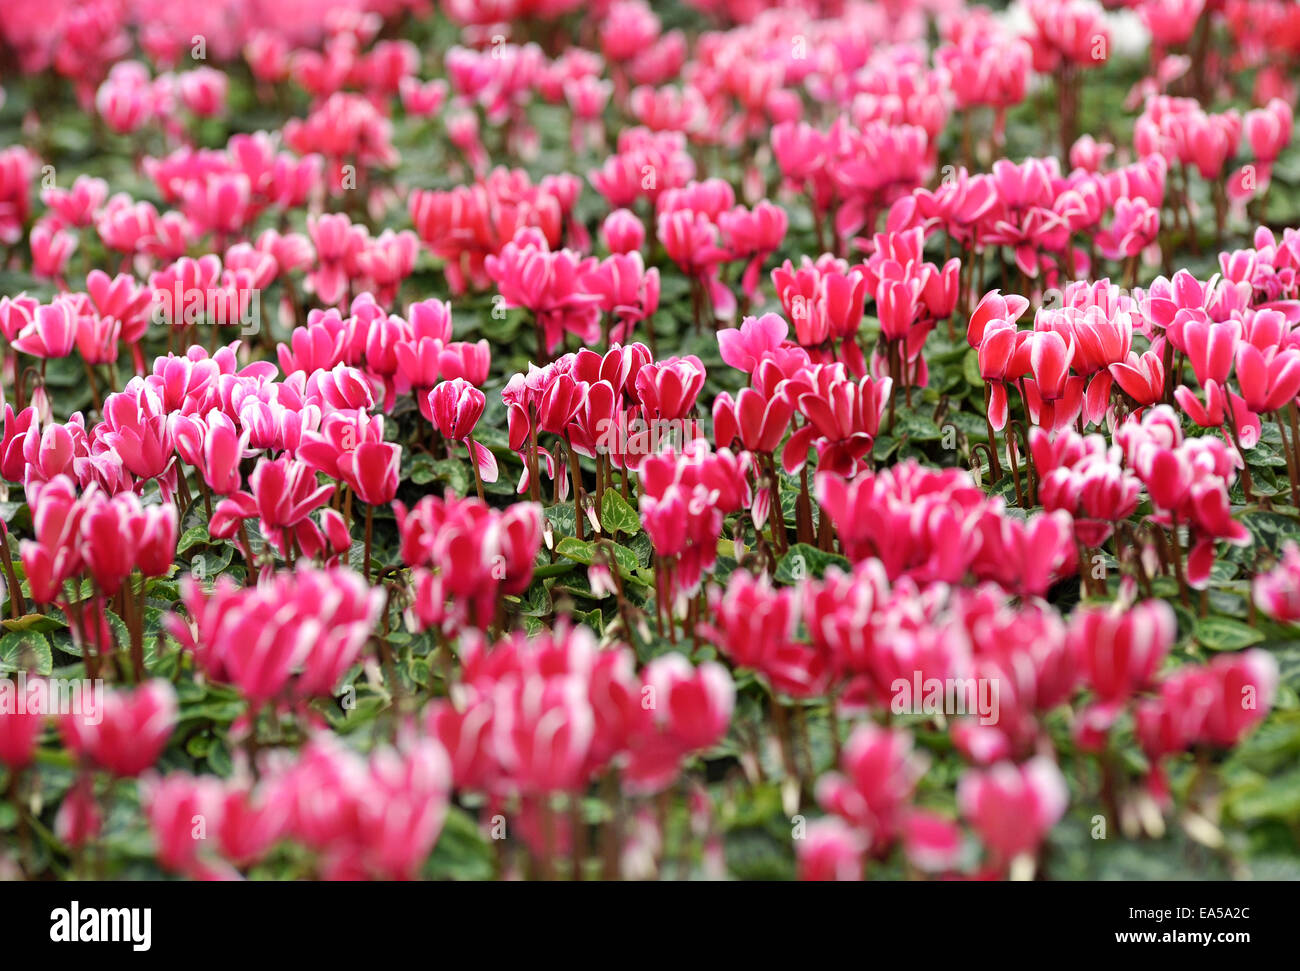 Background of colorful pink cyclamen flowers - Stock Image